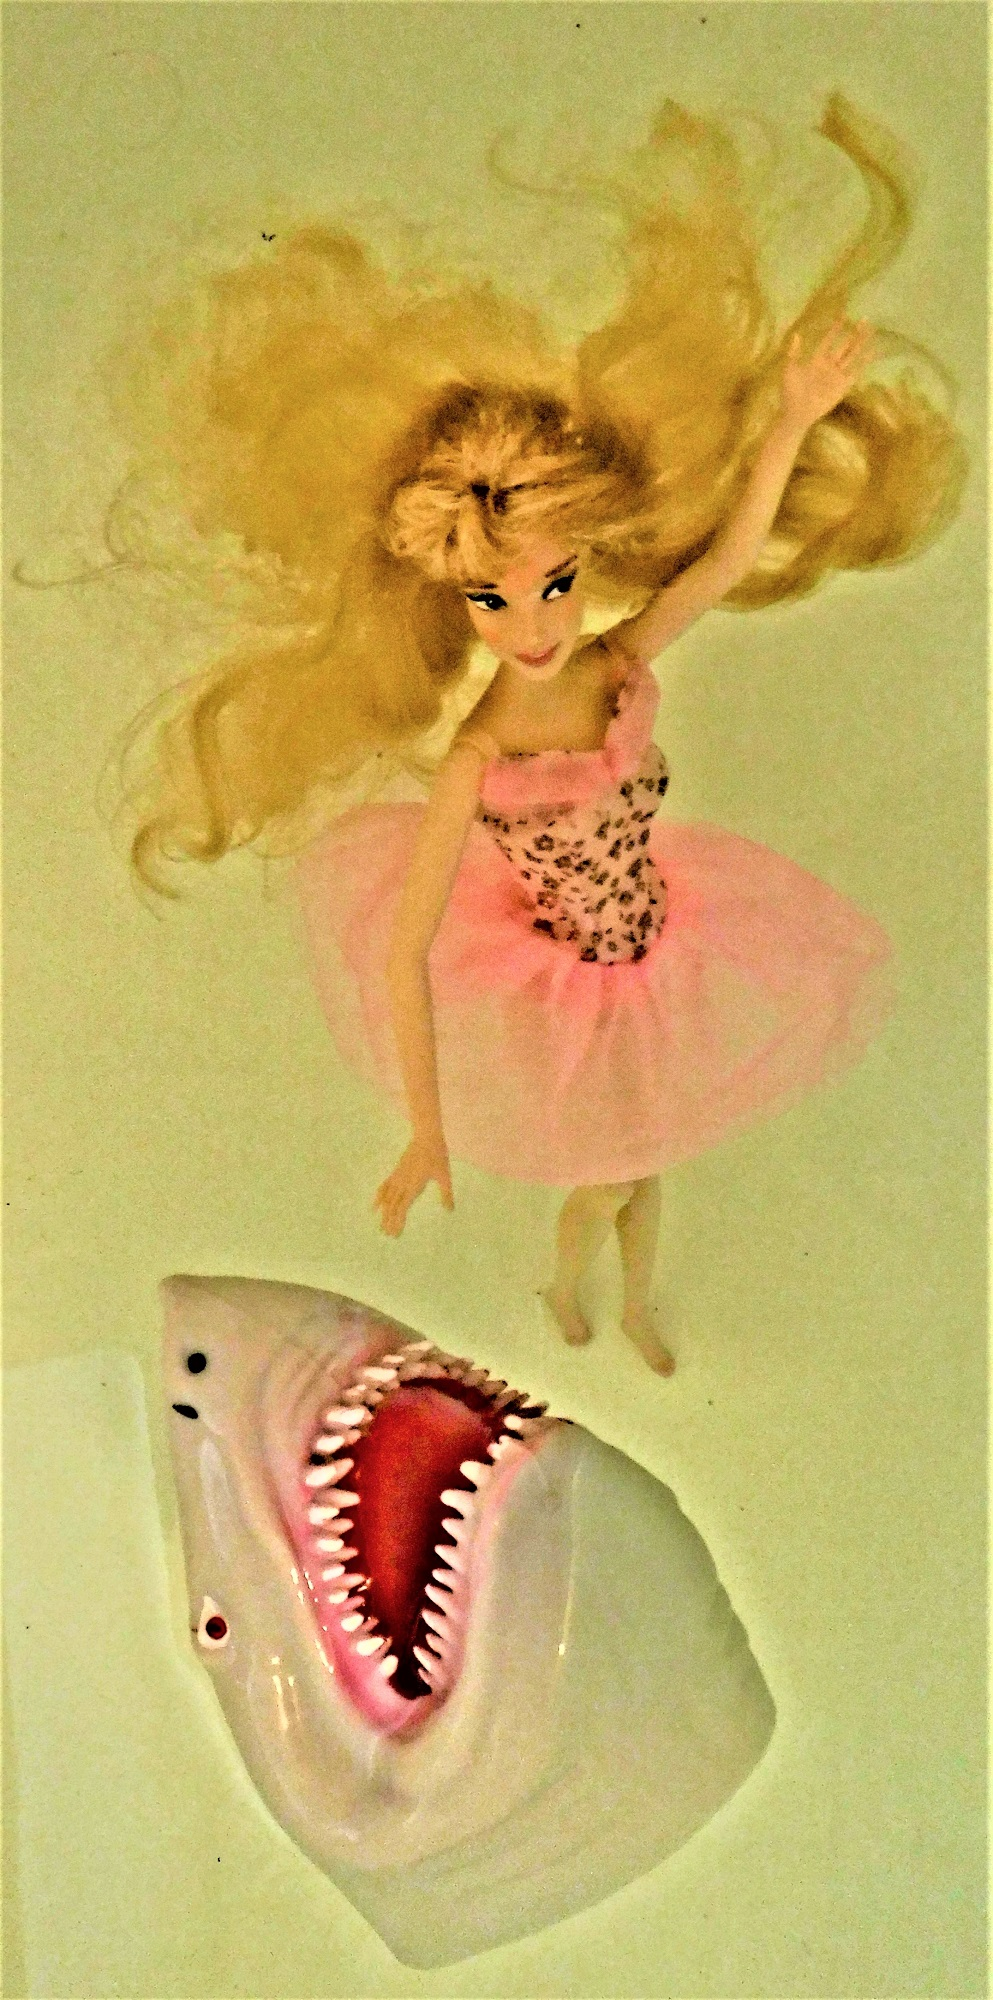 shark puppet blonde barbie (2).JPG